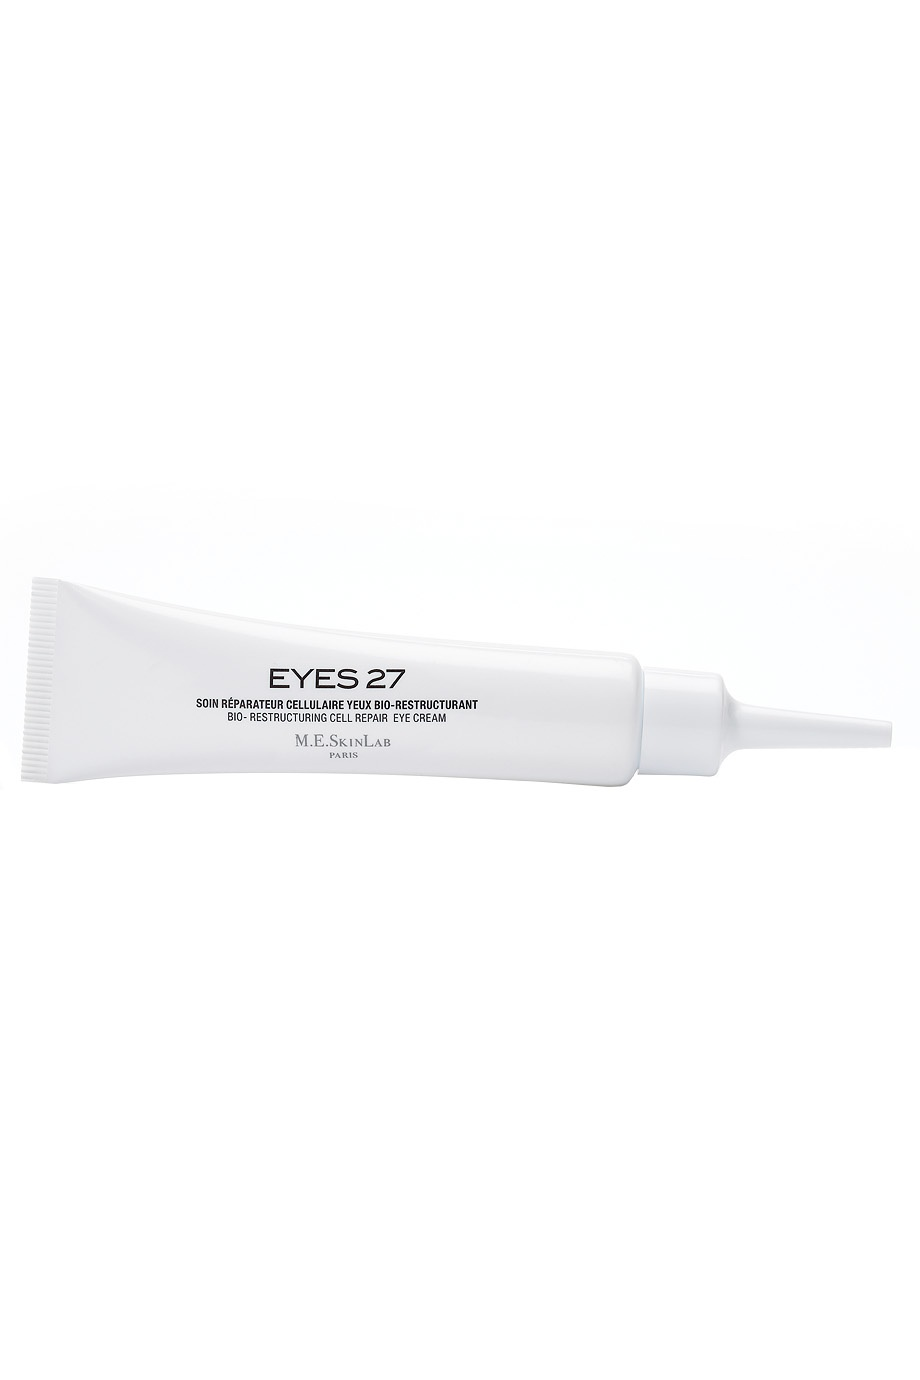 Восстанавливающий крем для зоны вокруг глаз Eyes 27 15ml Cosmetics 27 (фото)